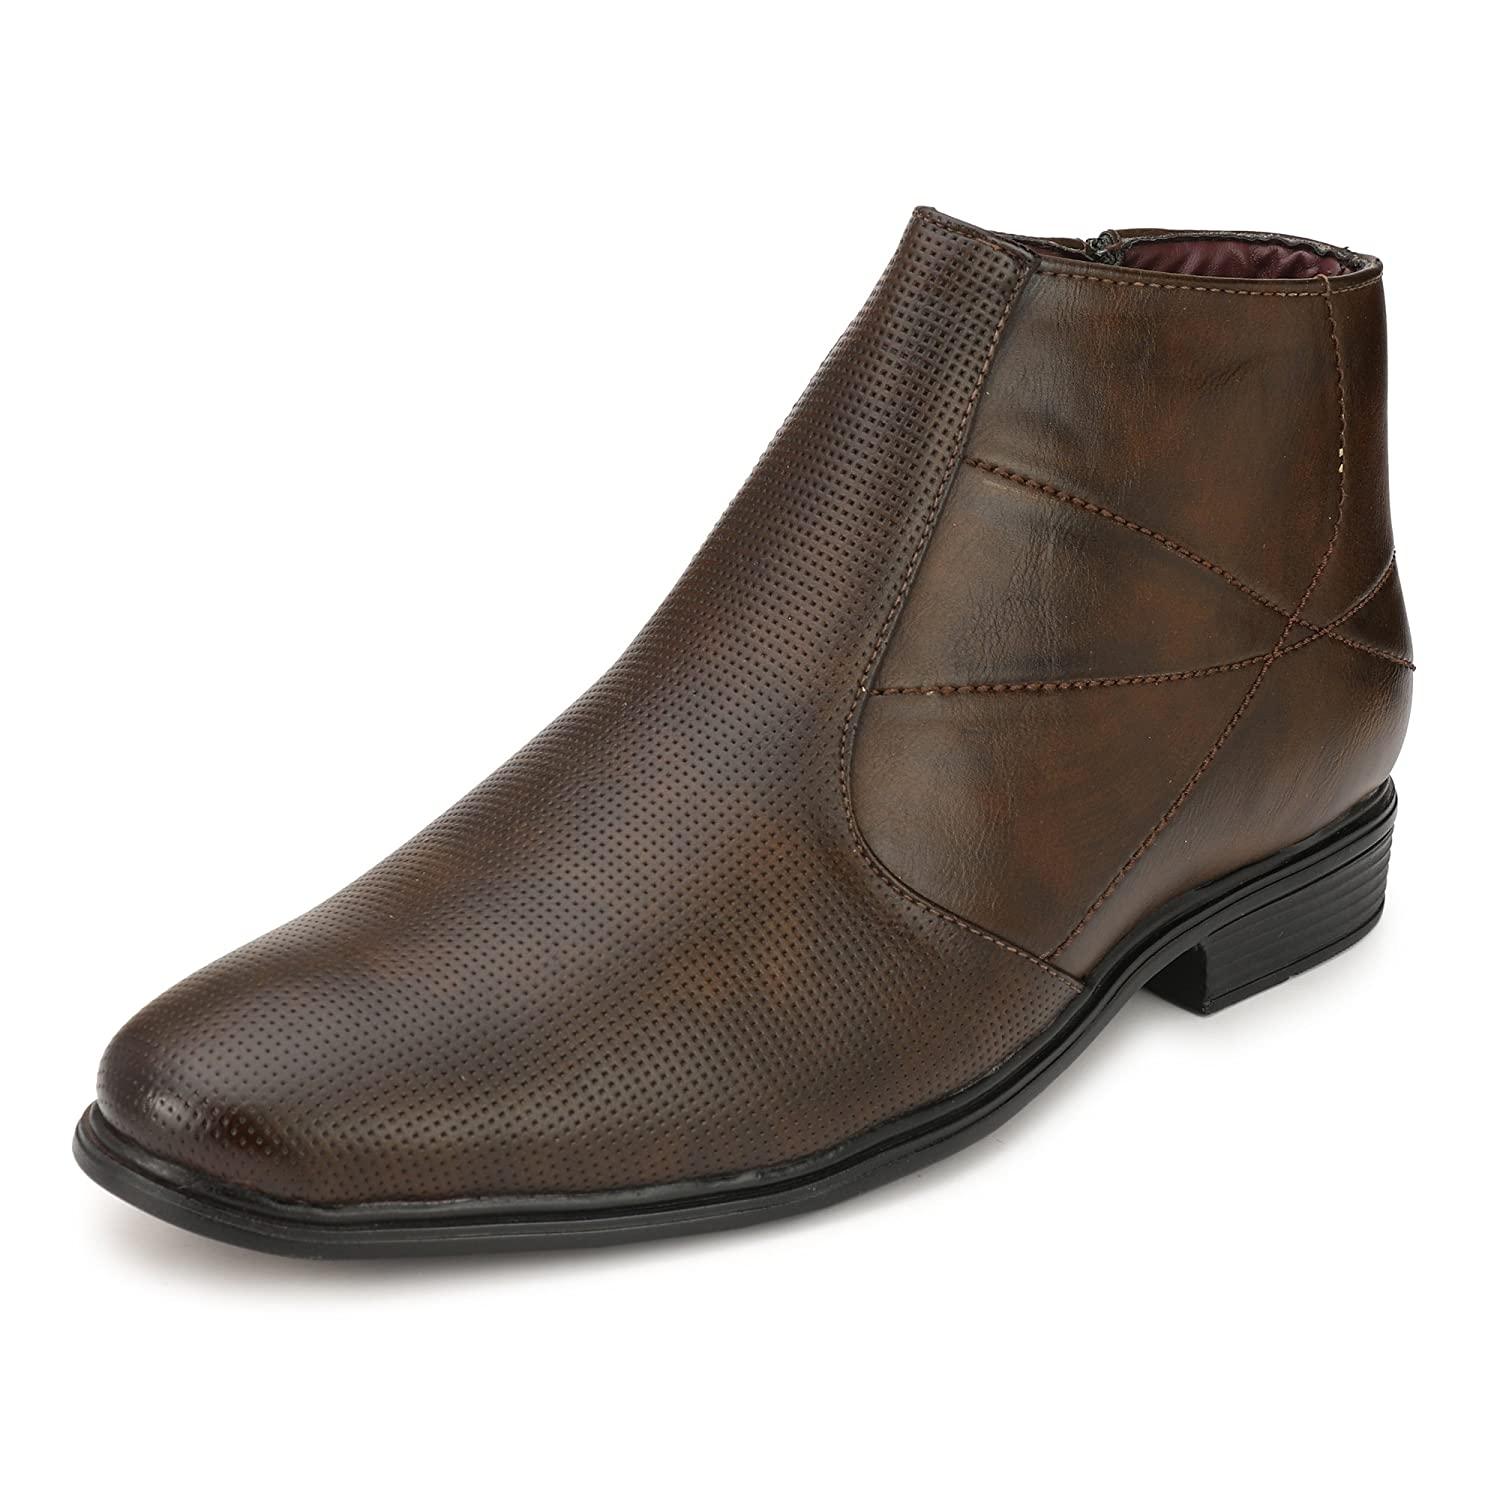 Buy KNOOS Mens high Ankle Formal Boots